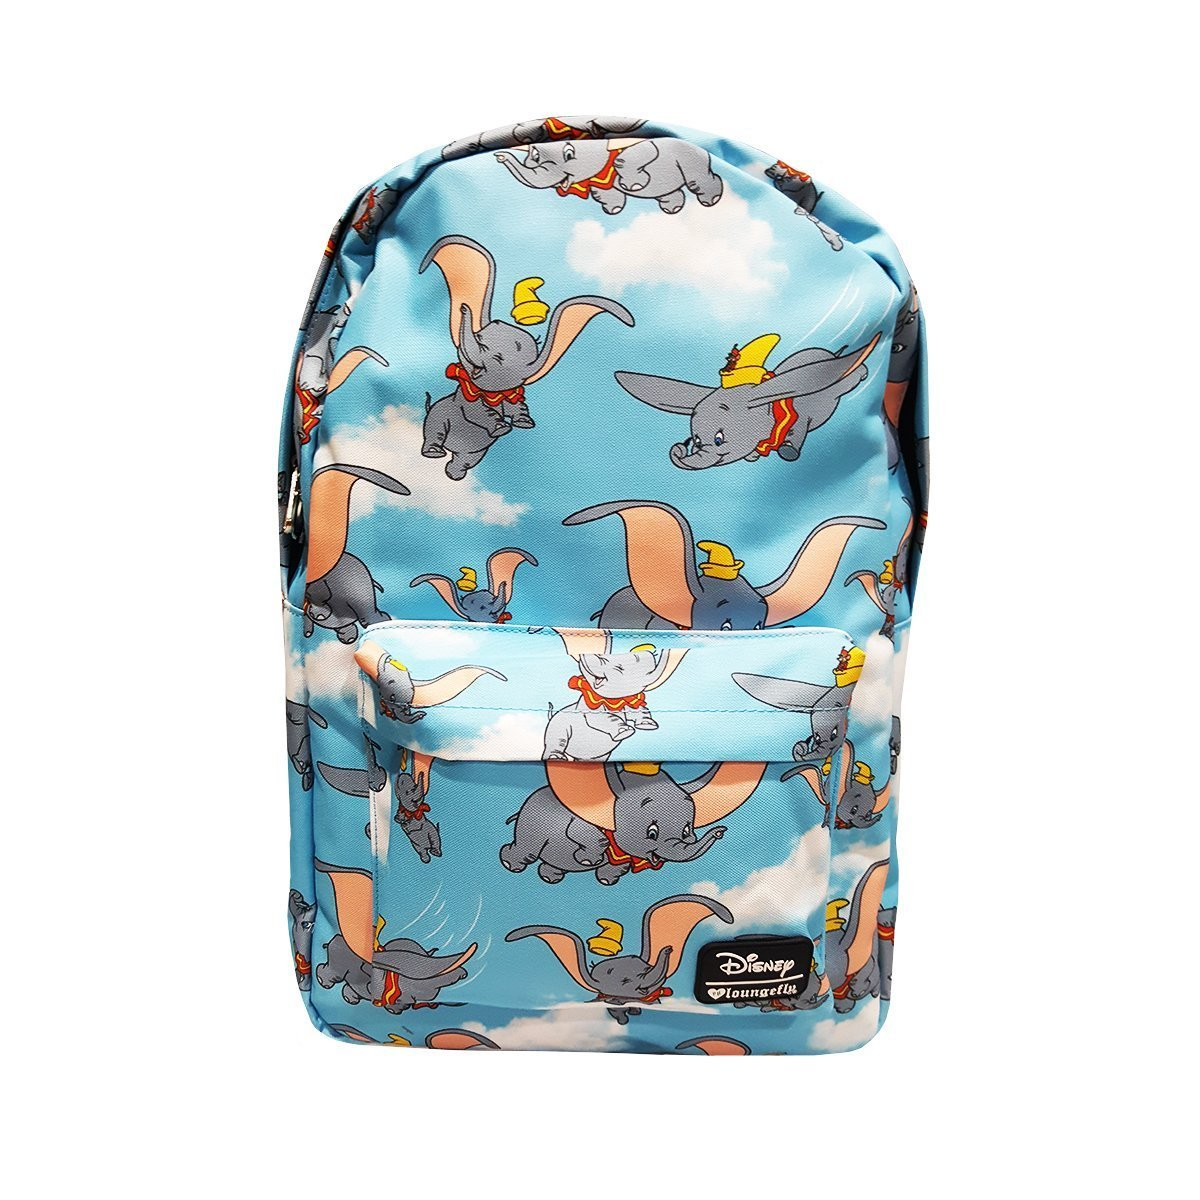 b197b8347a Get Quotations · Loungefly Flying Dumbo Backpack Standard